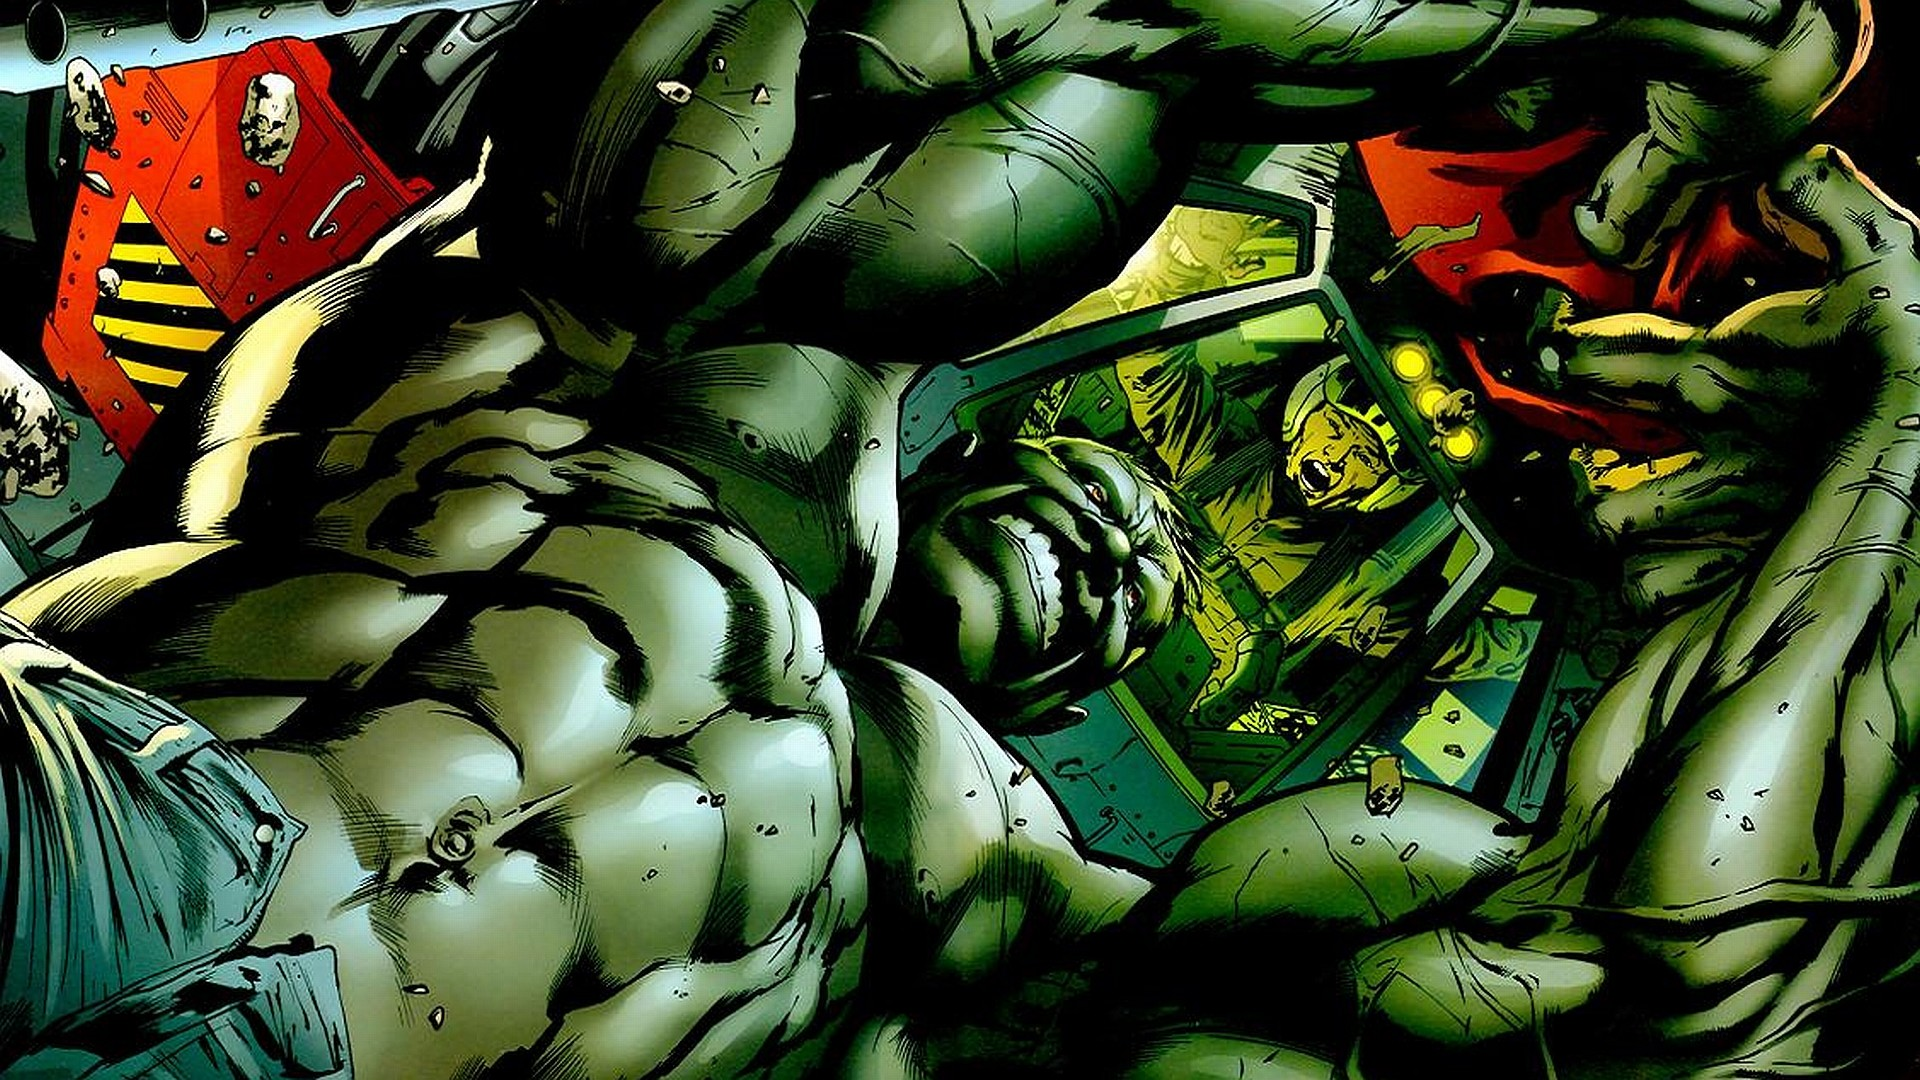 Angry Lion Wallpaper Hd 1080p The Hulk Wallpaper 64 Images